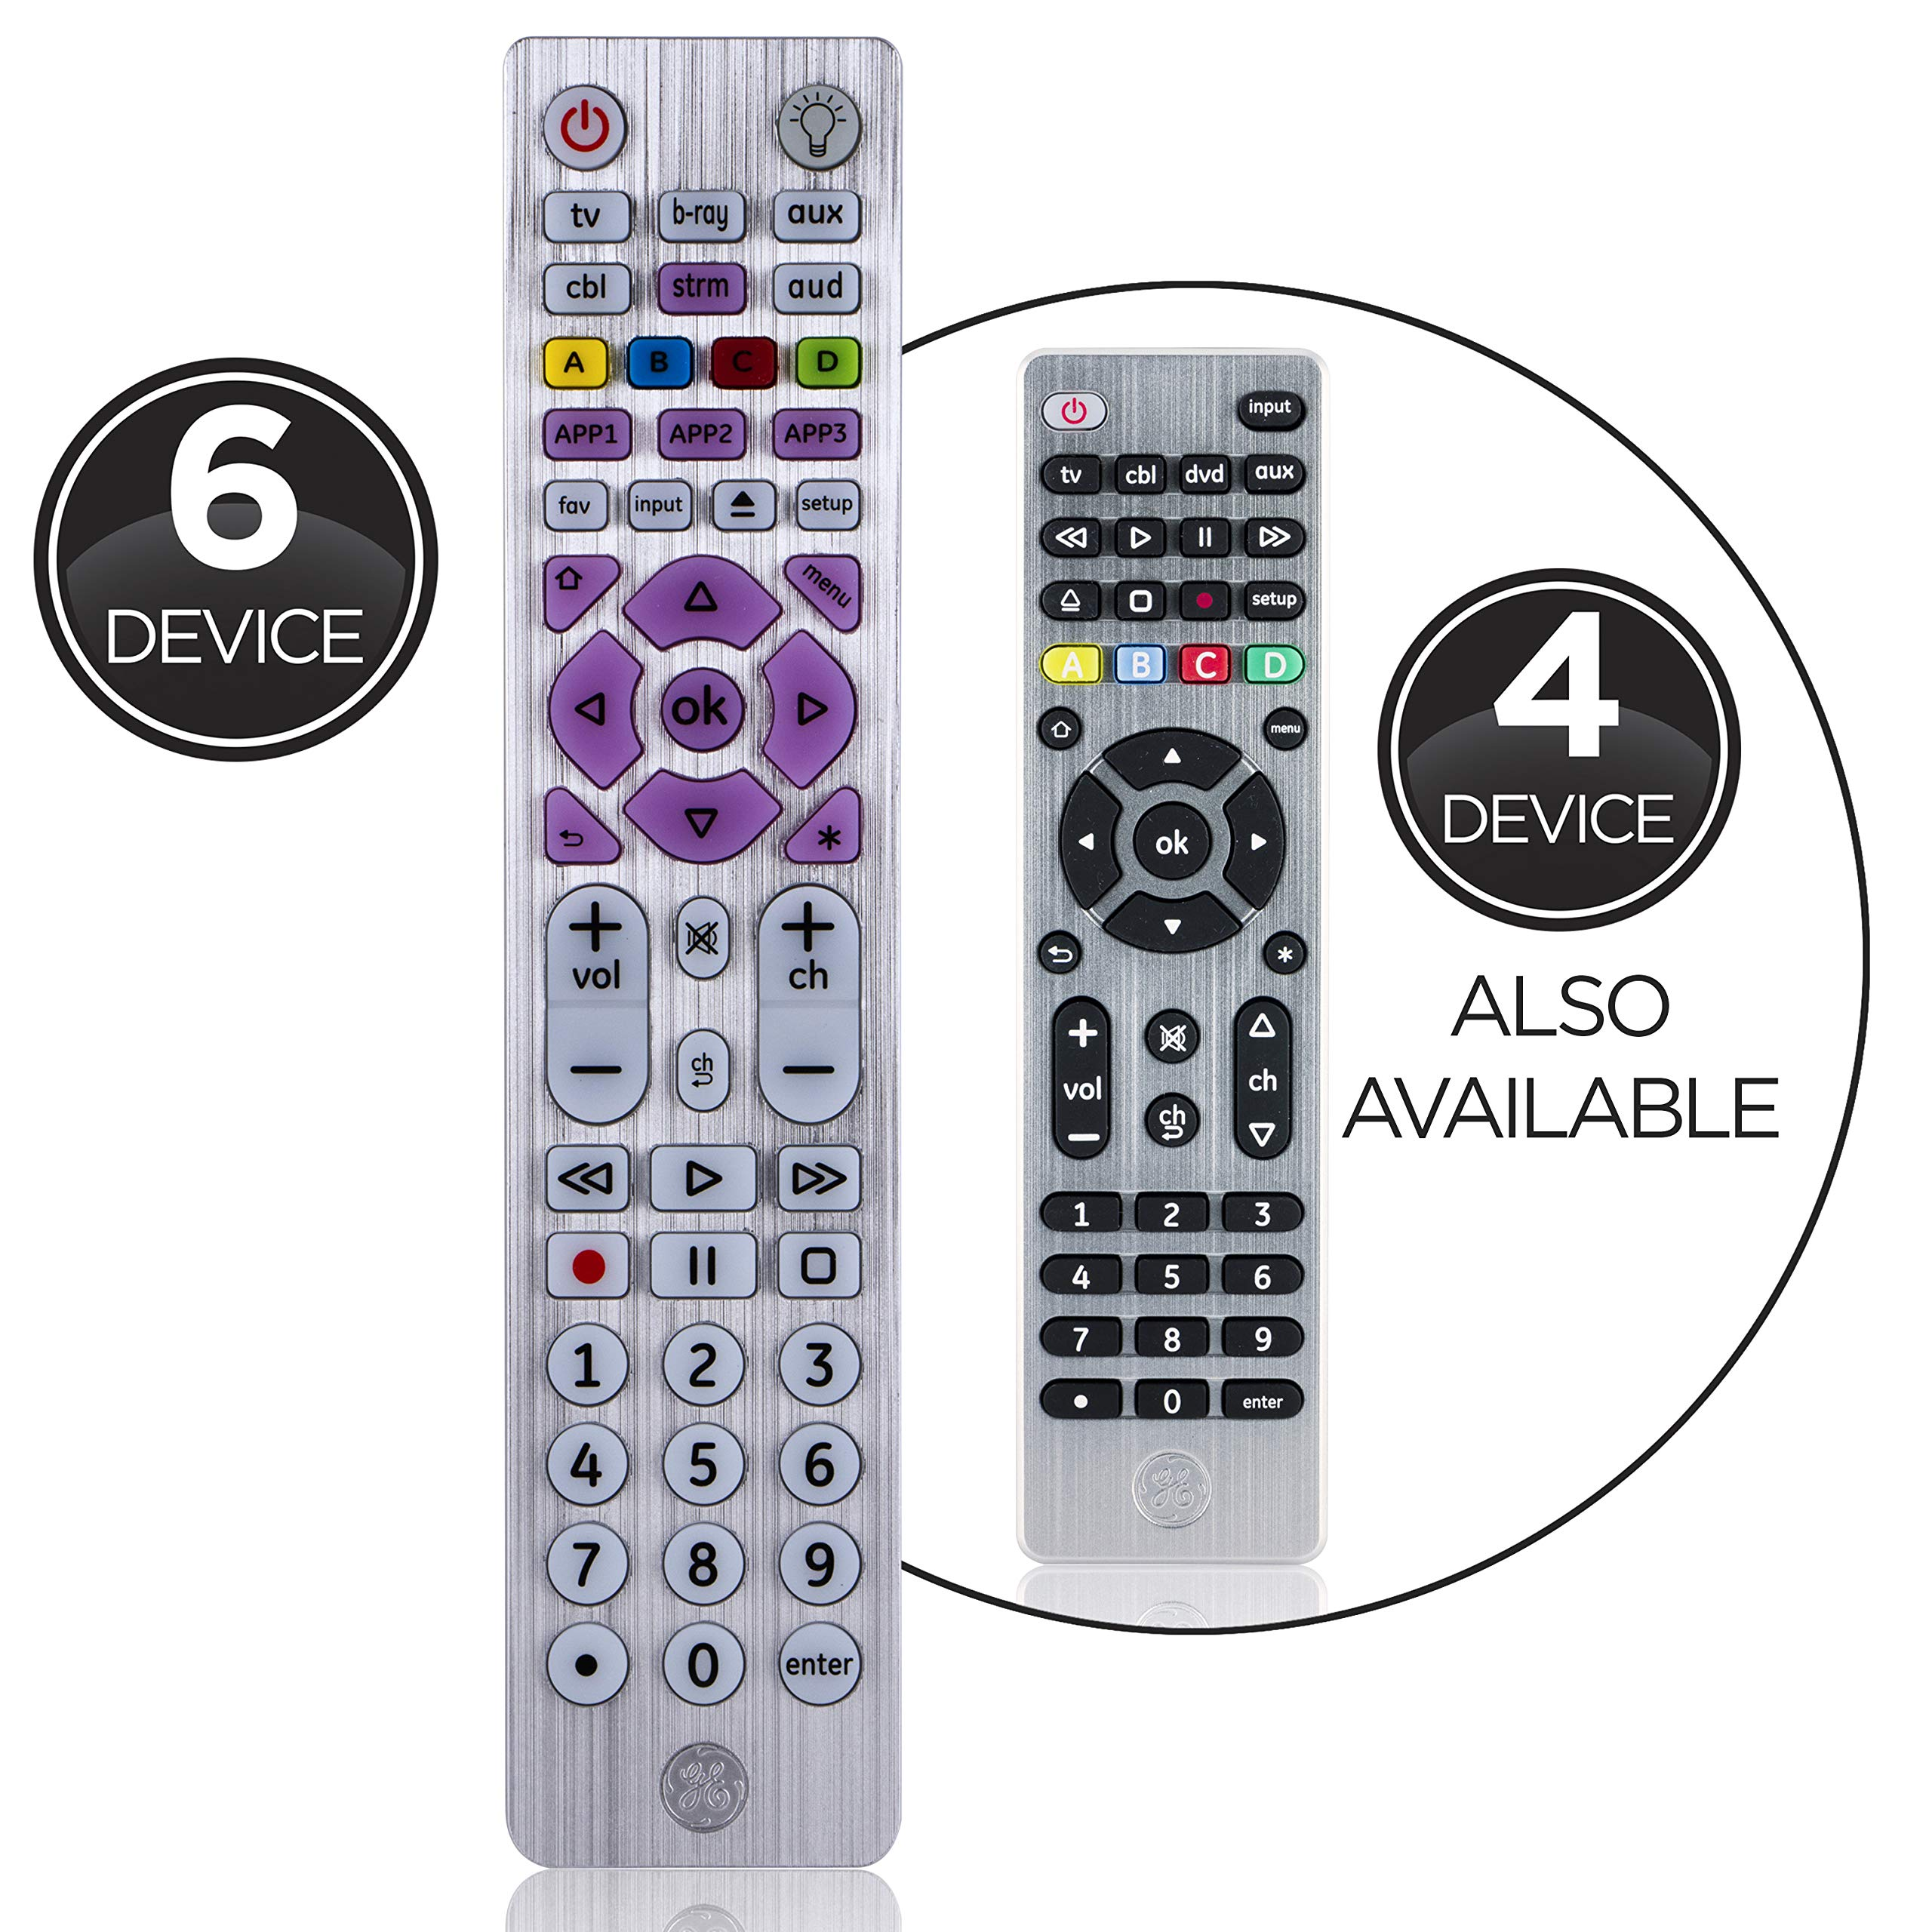 GE Universal Remote, Backlit, for Samsung, Vizio, Lg, Sony, Sharp, Roku, Apple TV, Smart TVs, Streaming Players, Blu-Ray, DVD, Master Volume Control, Simple Setup, 6-Device, Black, 37038 by GE